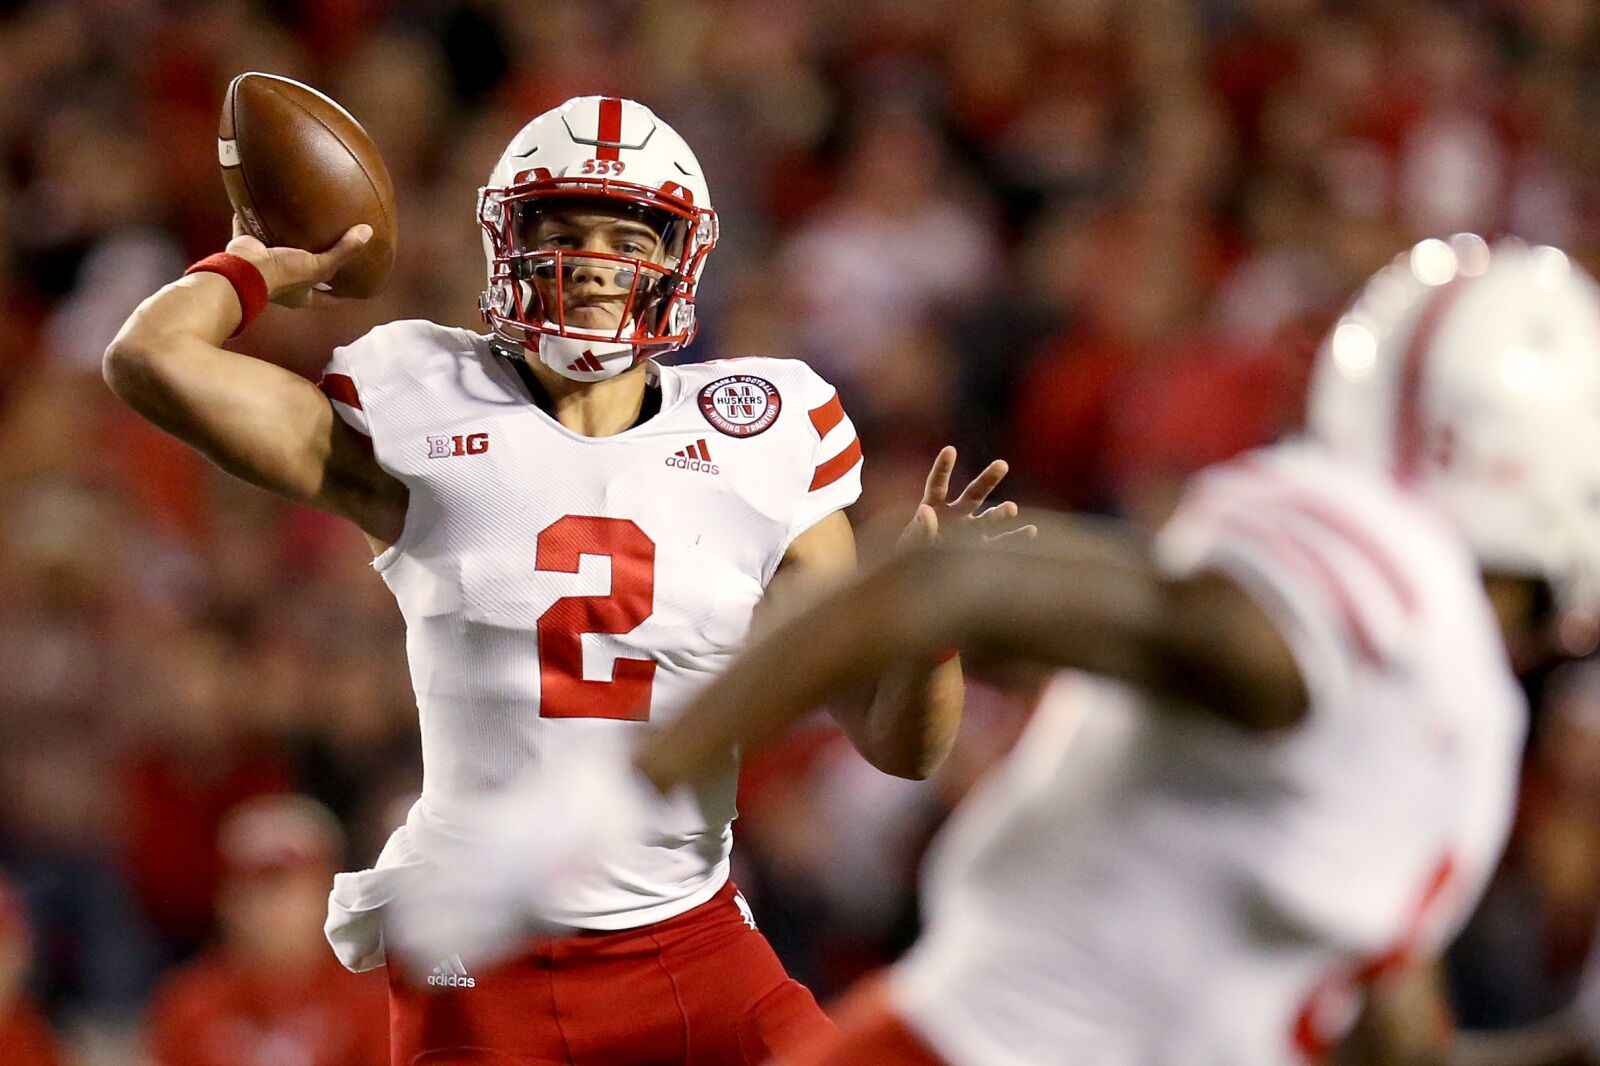 Nebraska Football: 3 reasons Huskers can hang with Ohio State